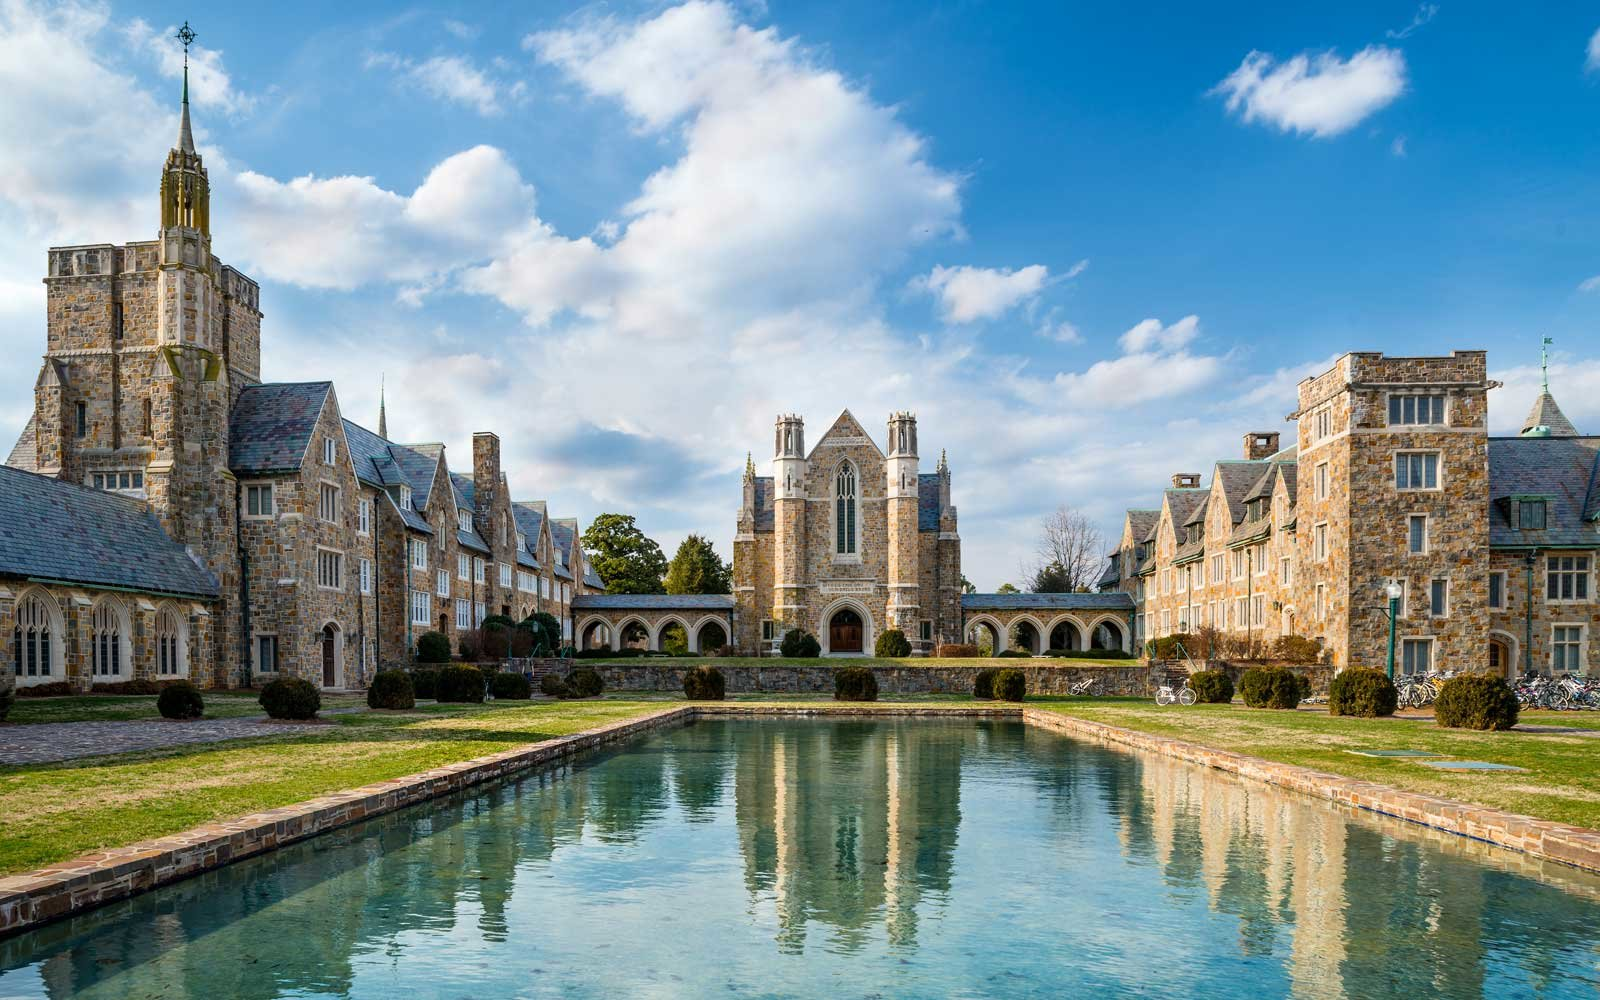 Berry College in Georgia